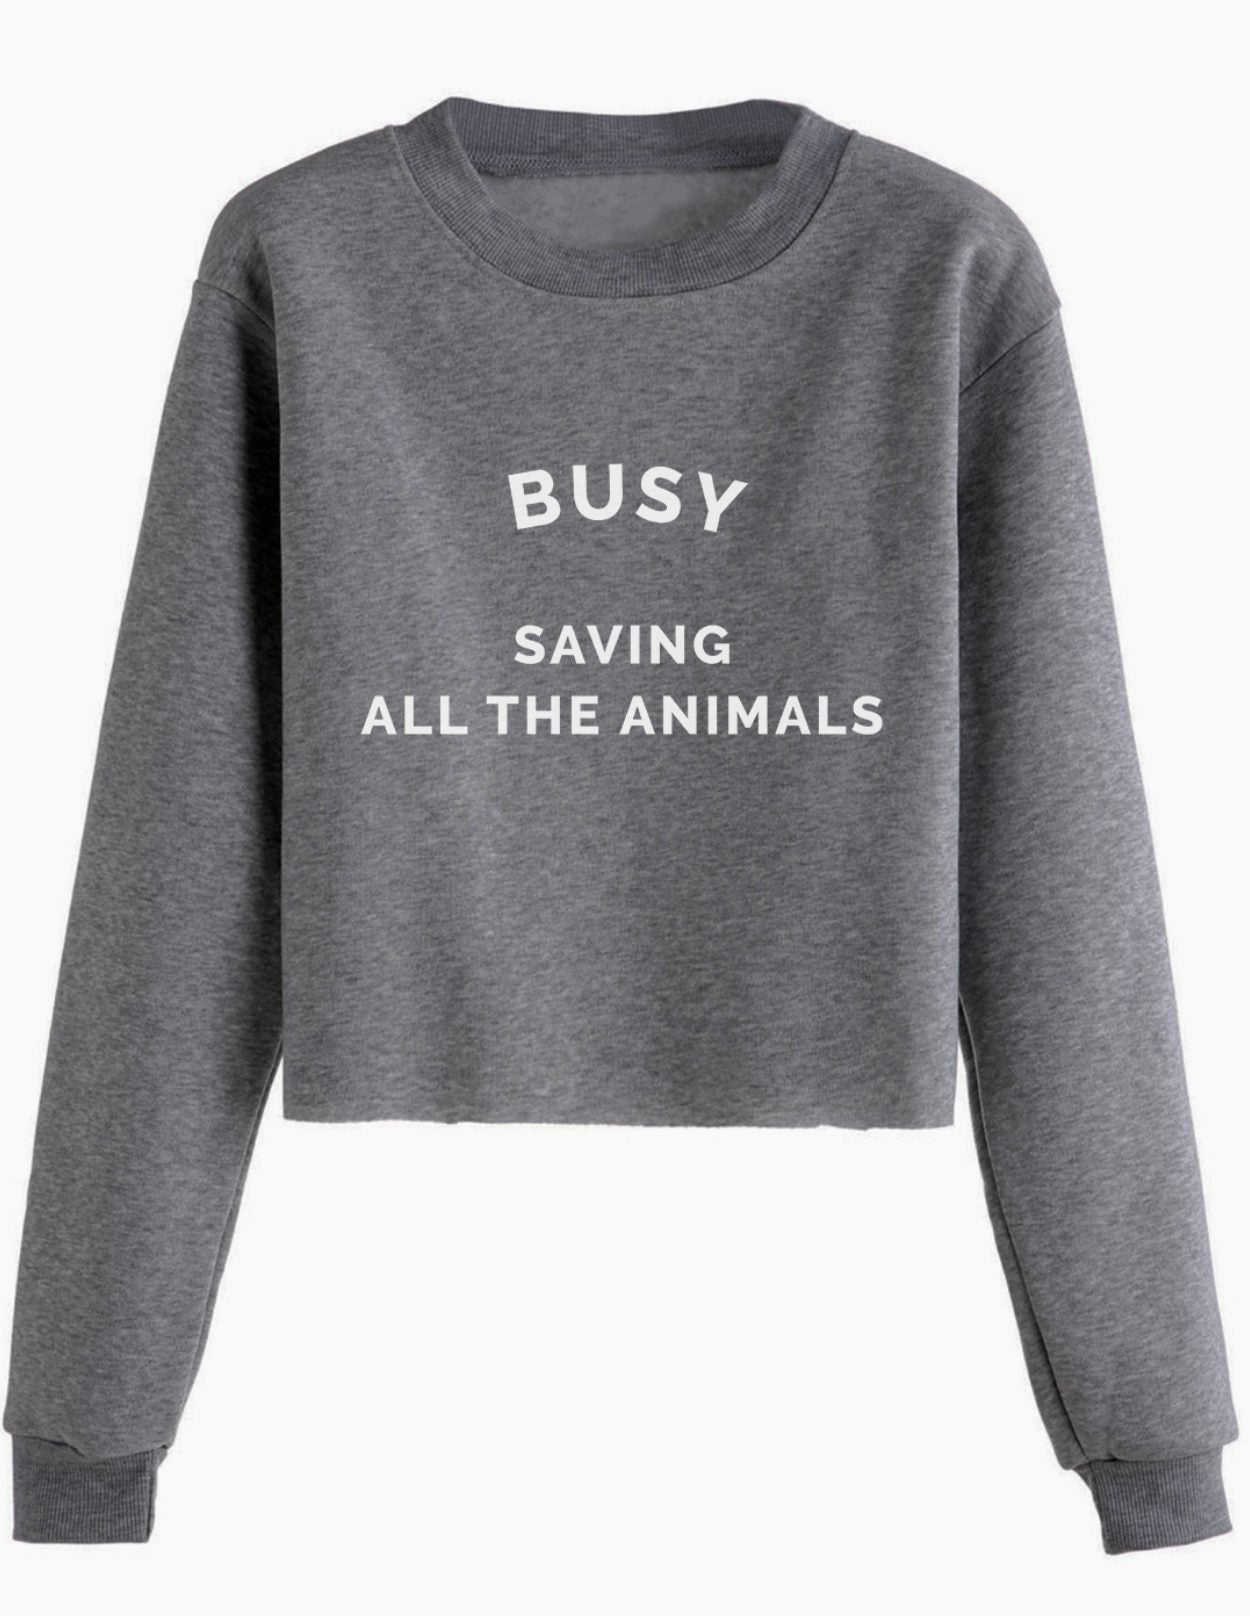 bff2adc3ad16 Busy Saving All The Animals - Cropped Crewneck - Wholesome Culture